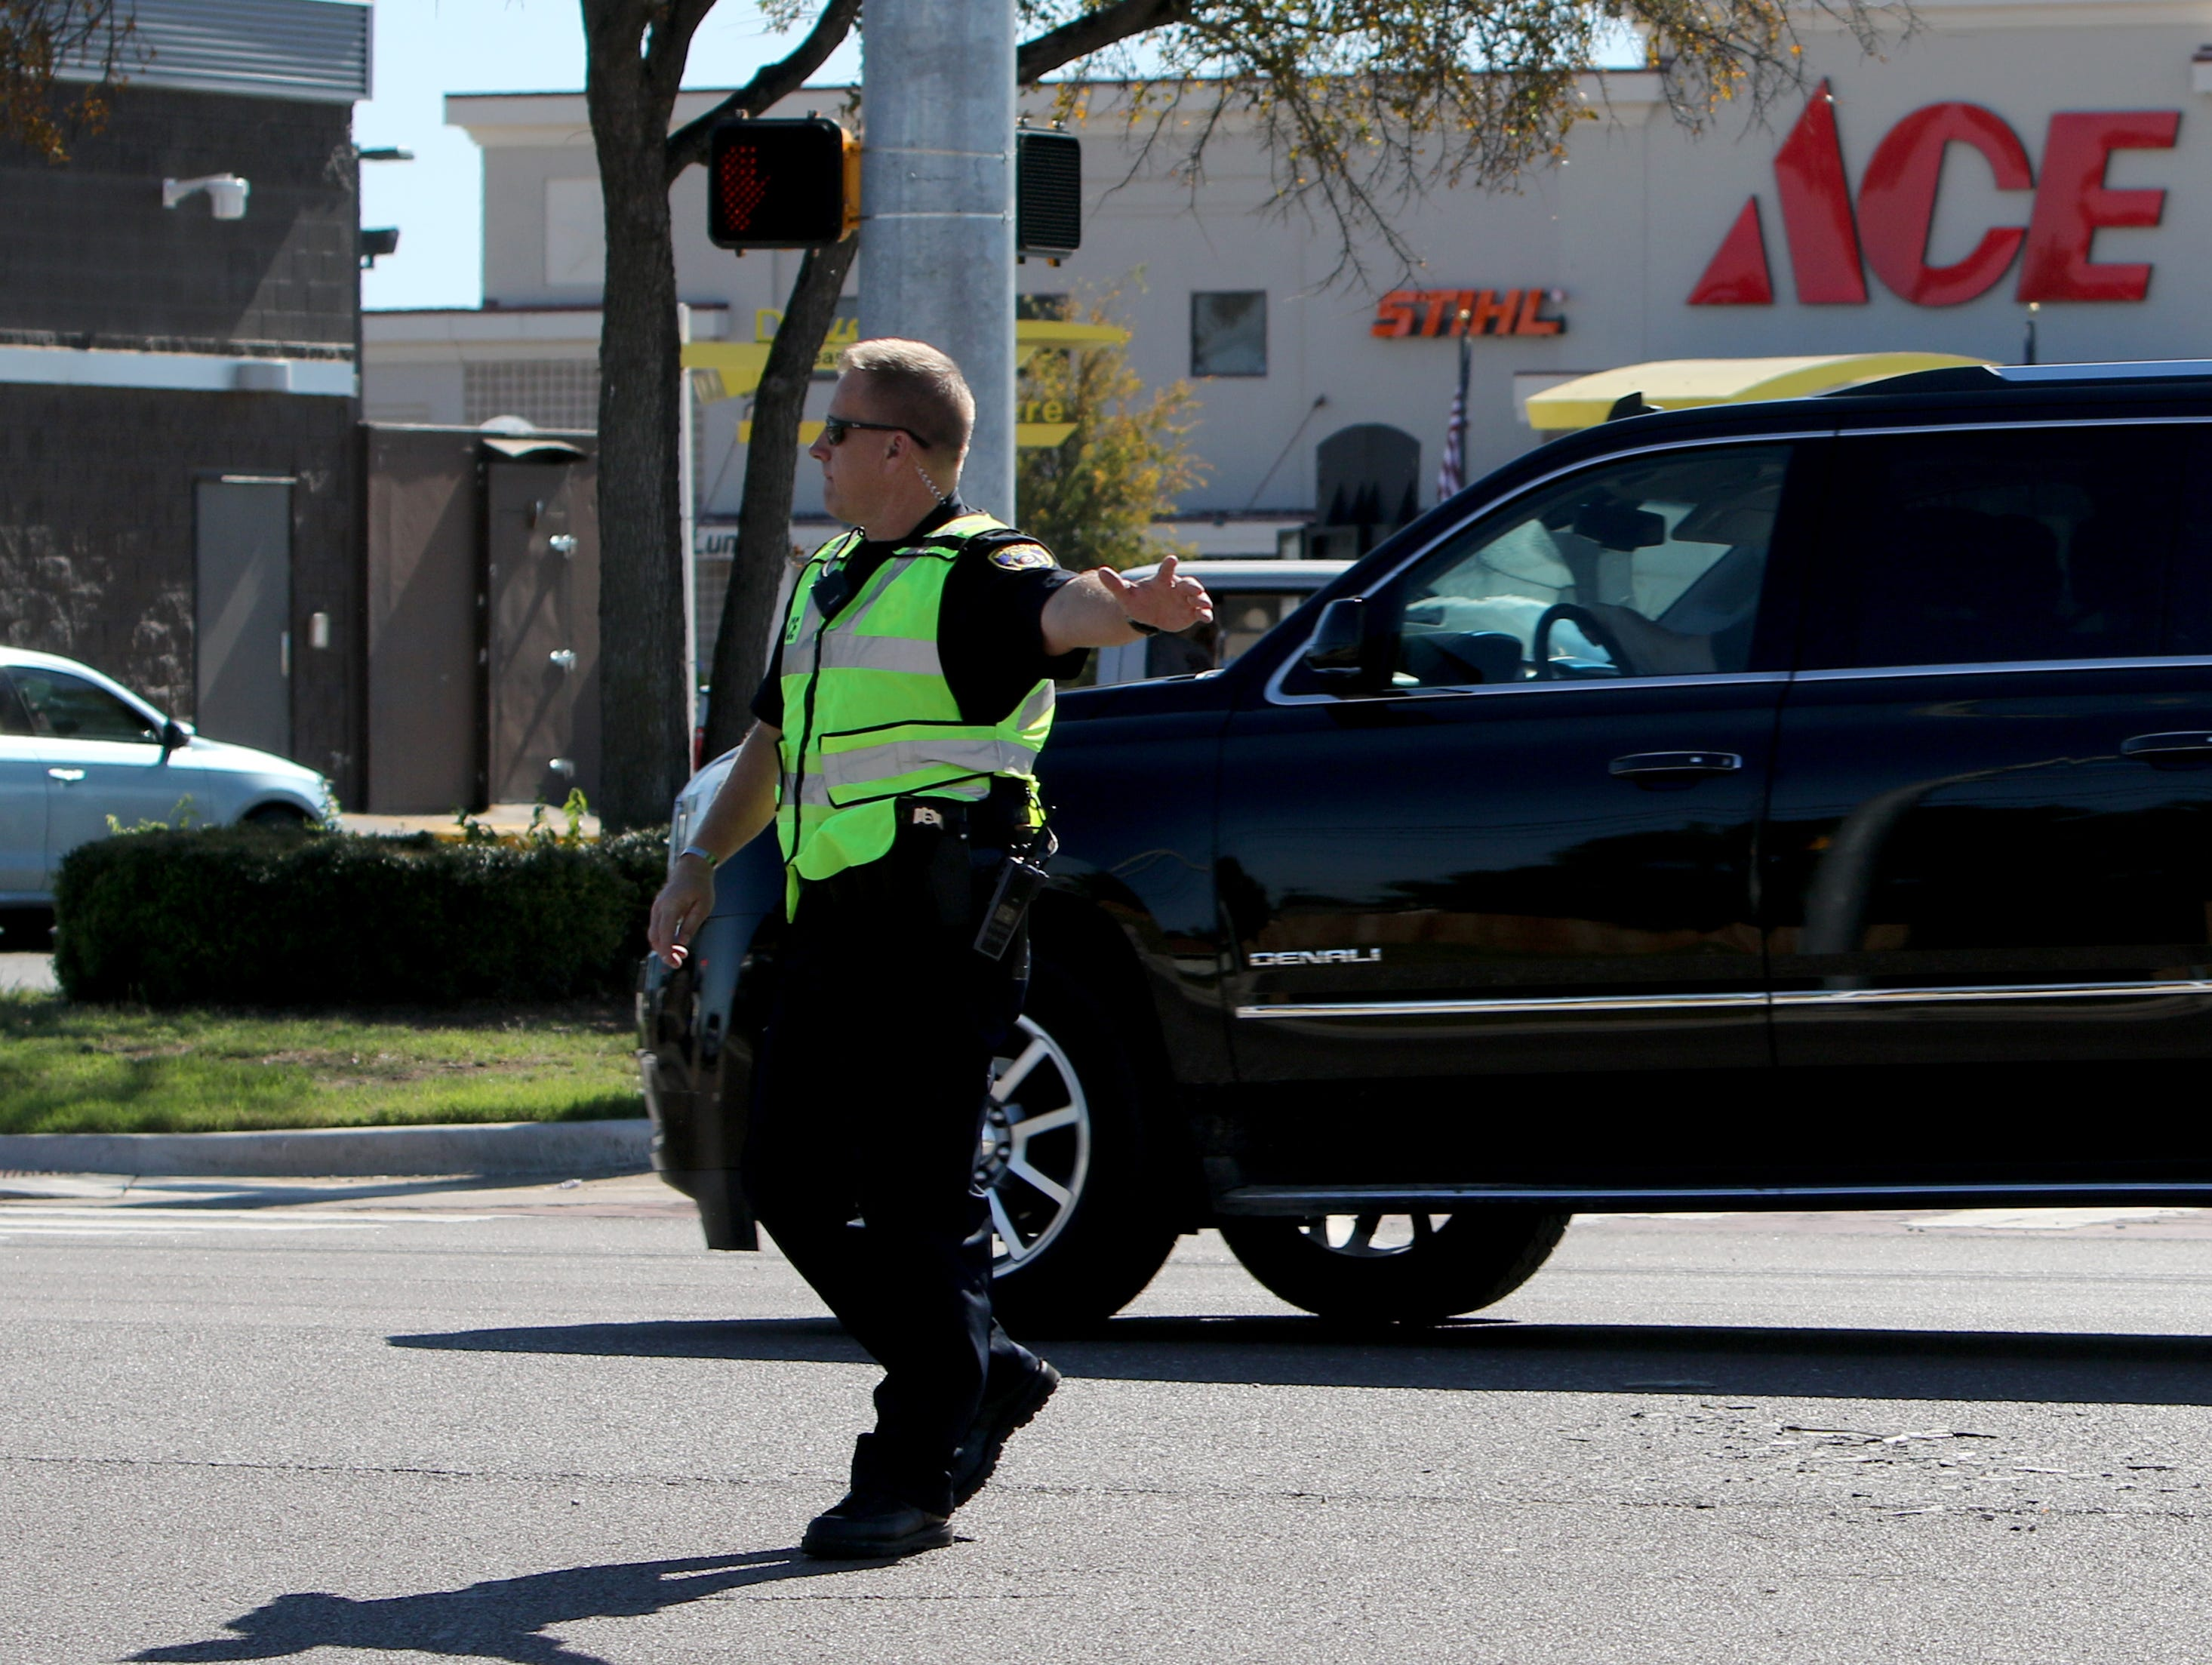 Police work to direct traffic at the site of a motorcycle wreak Sunday, Oct. 28, 2018, at the intersection of Southwest Parkway and Bridge Creek.